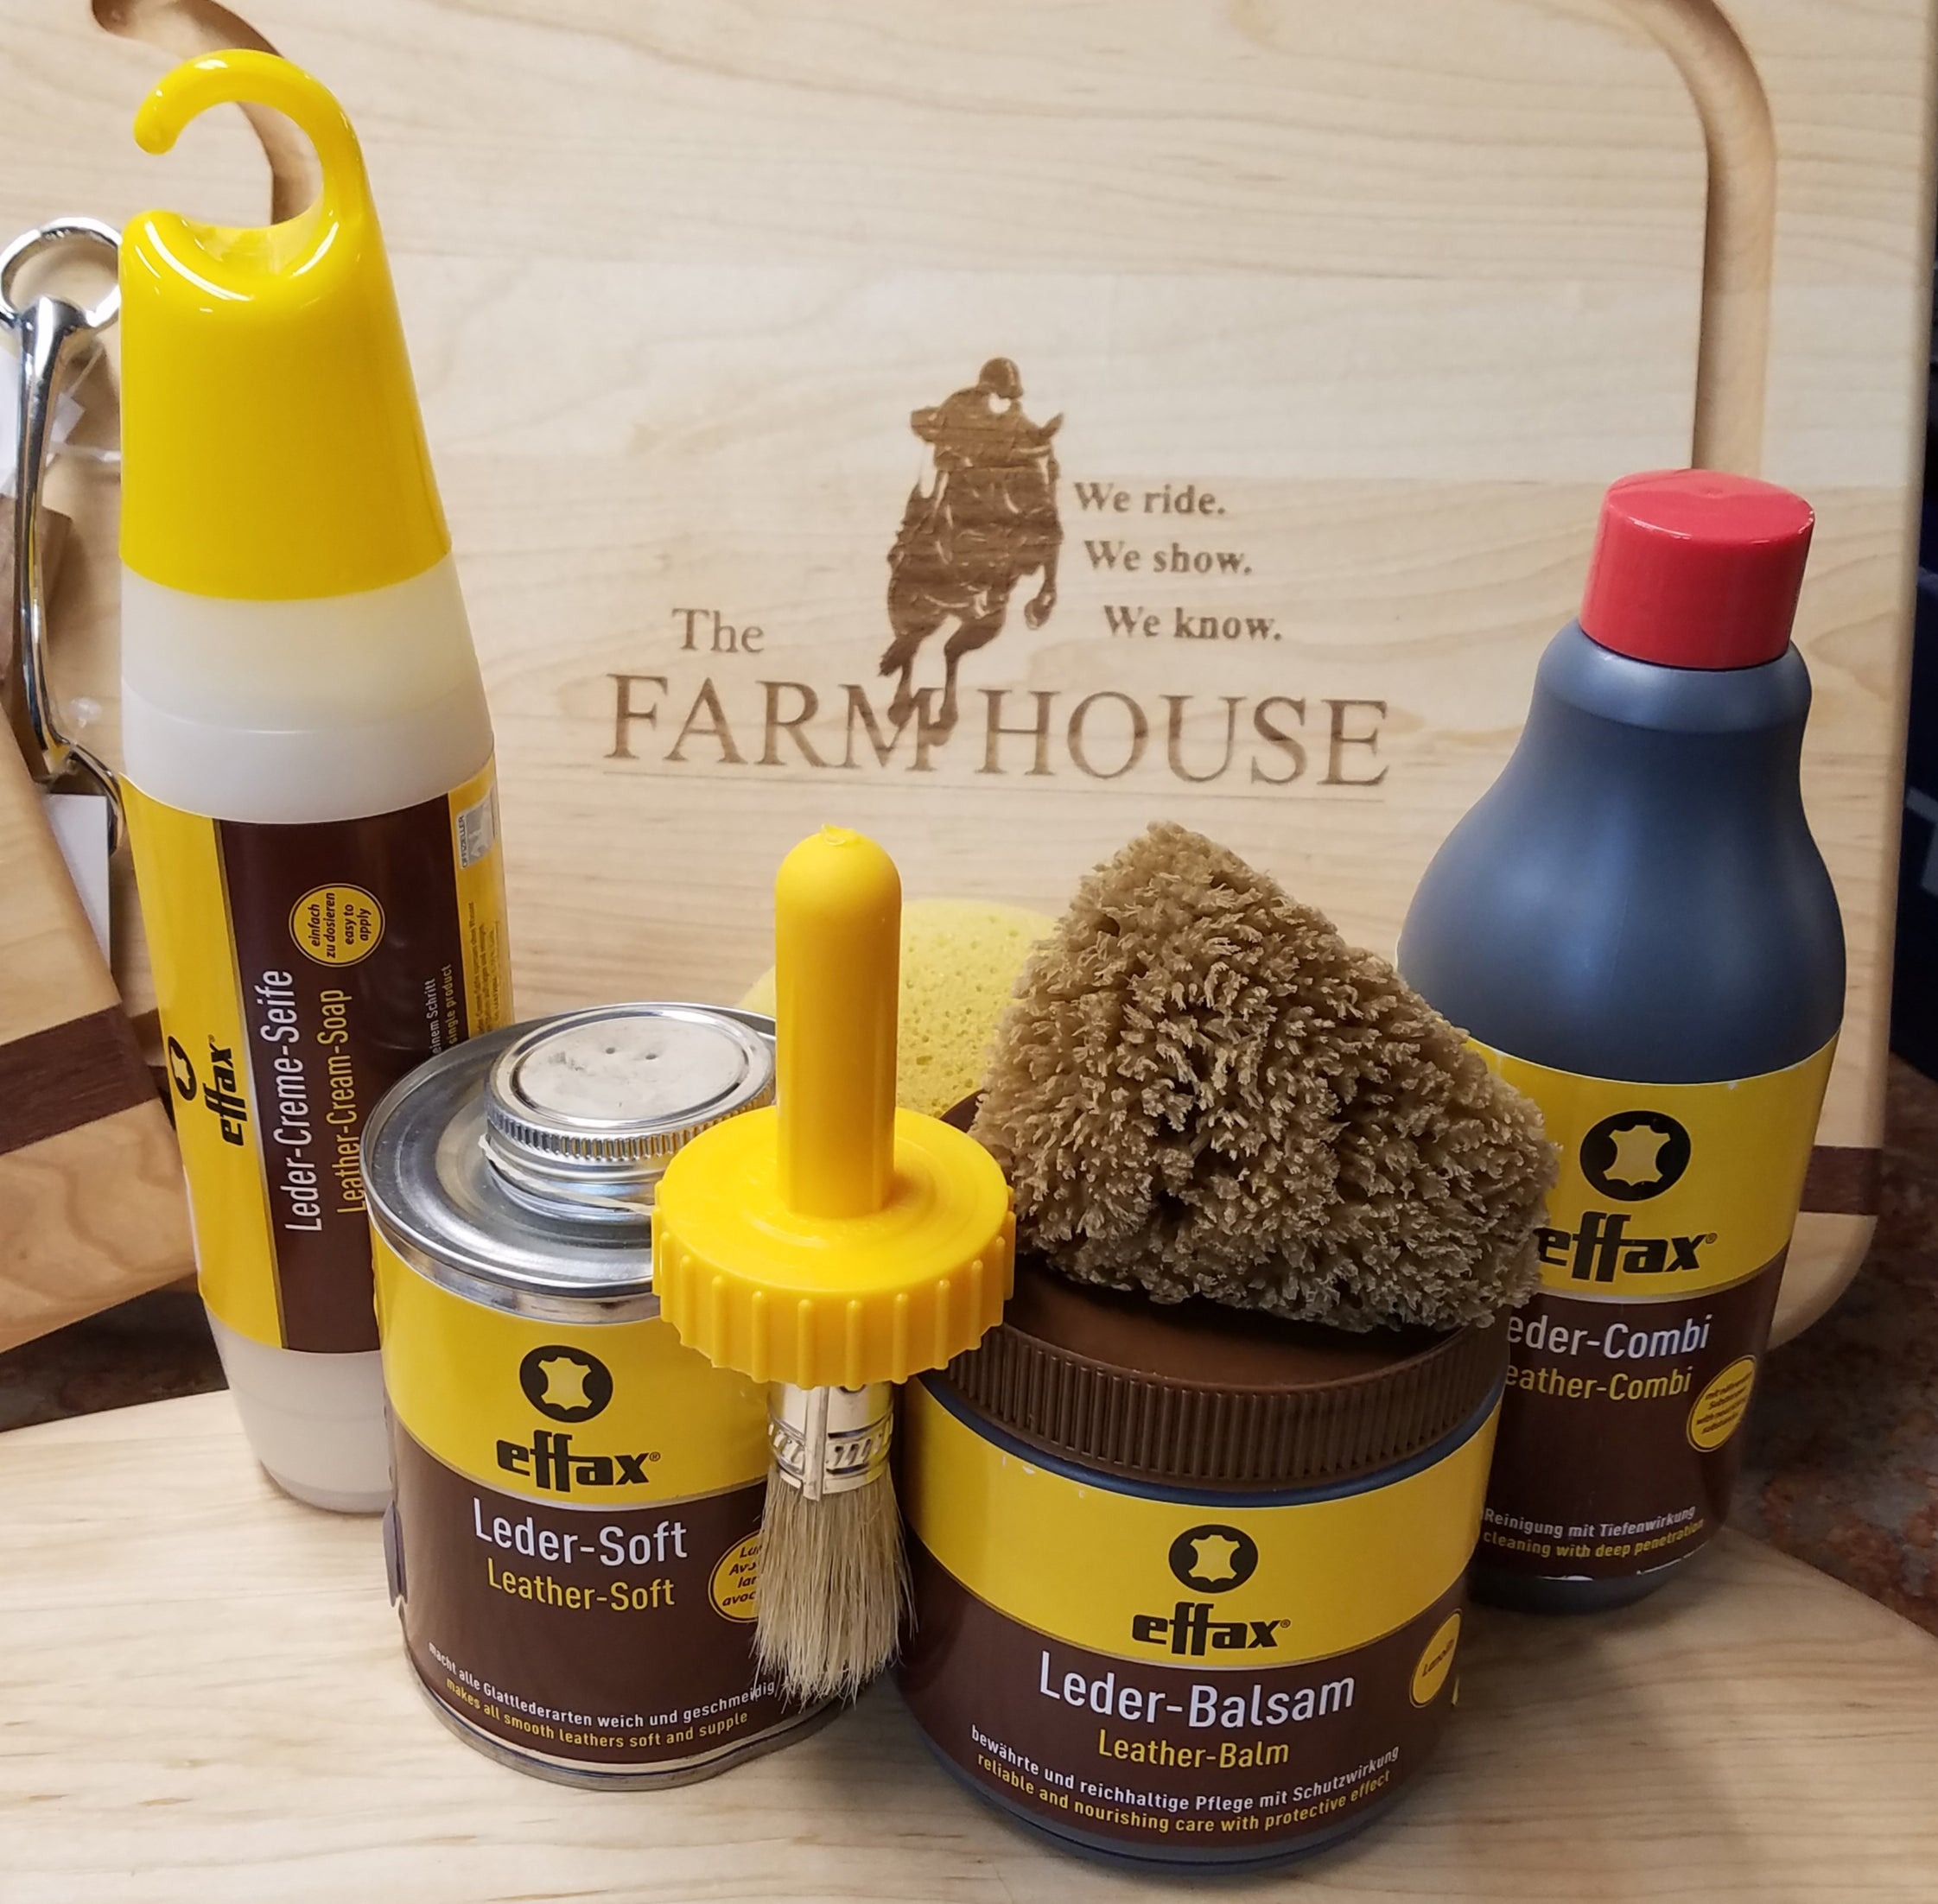 Products to clean tack with